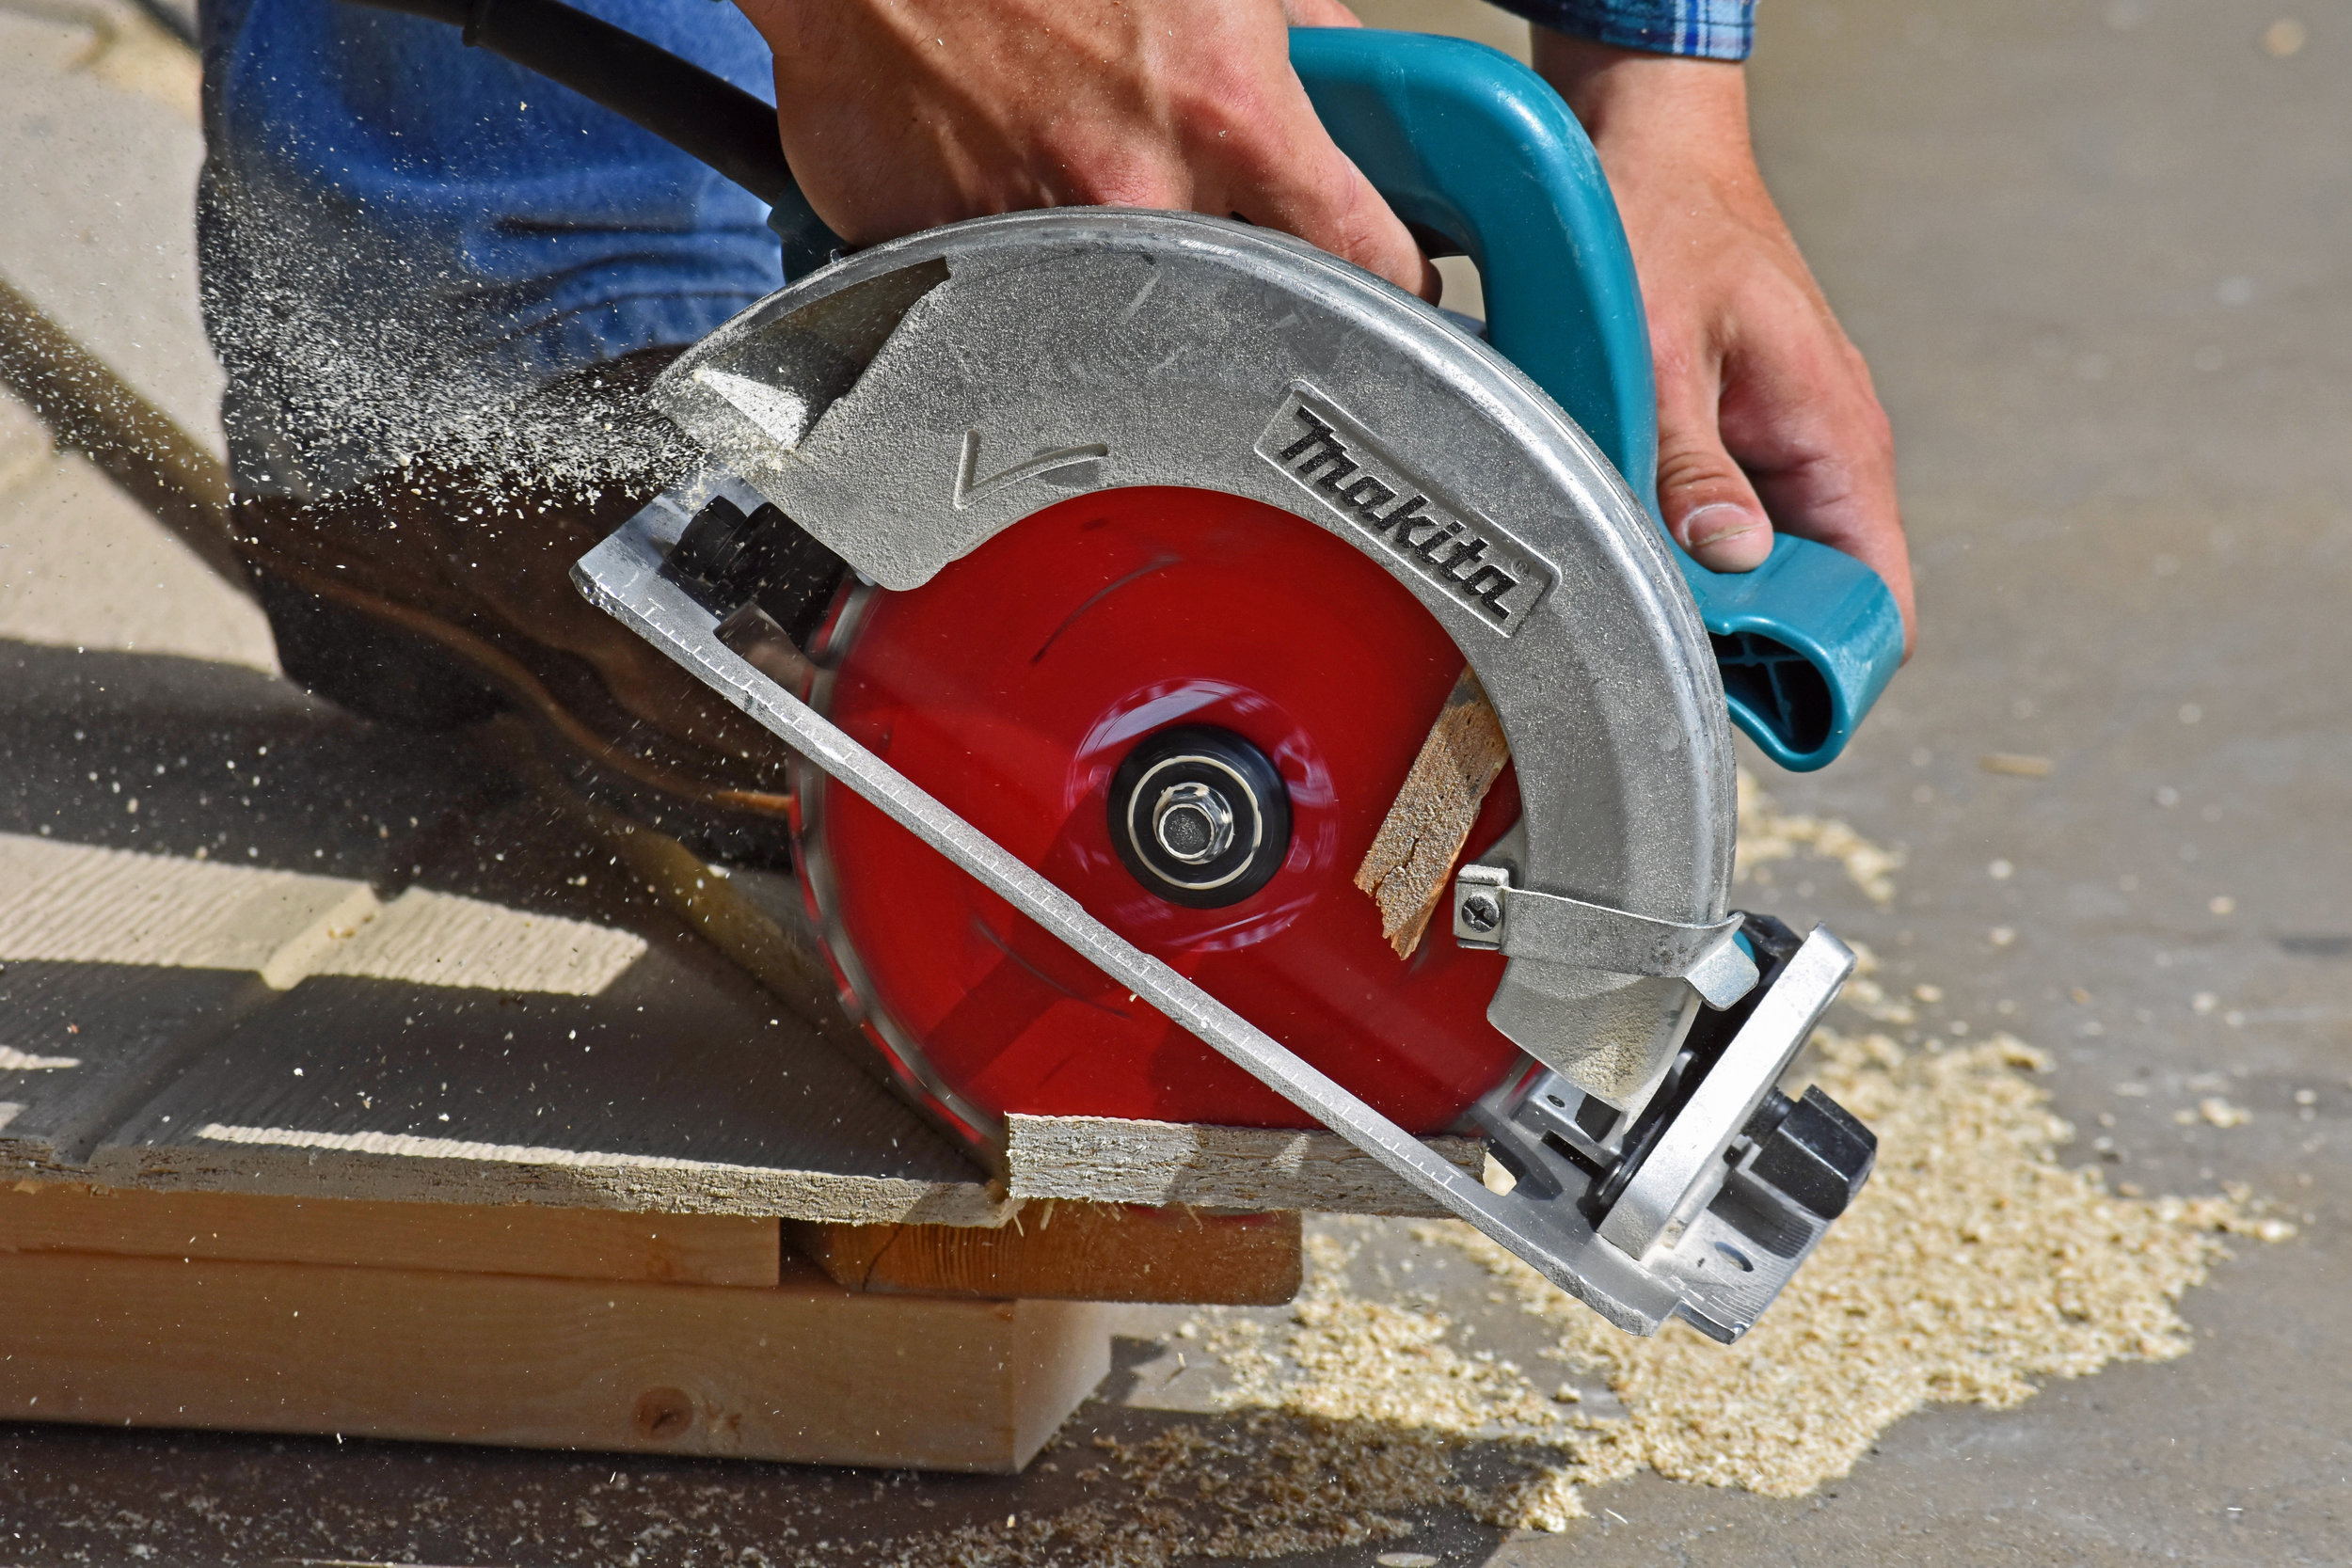 Craftsman is cutting wood that will be used to build a storage building. Manufactured in the USA and delivered right to your home in or near Las Vegas Nevada.